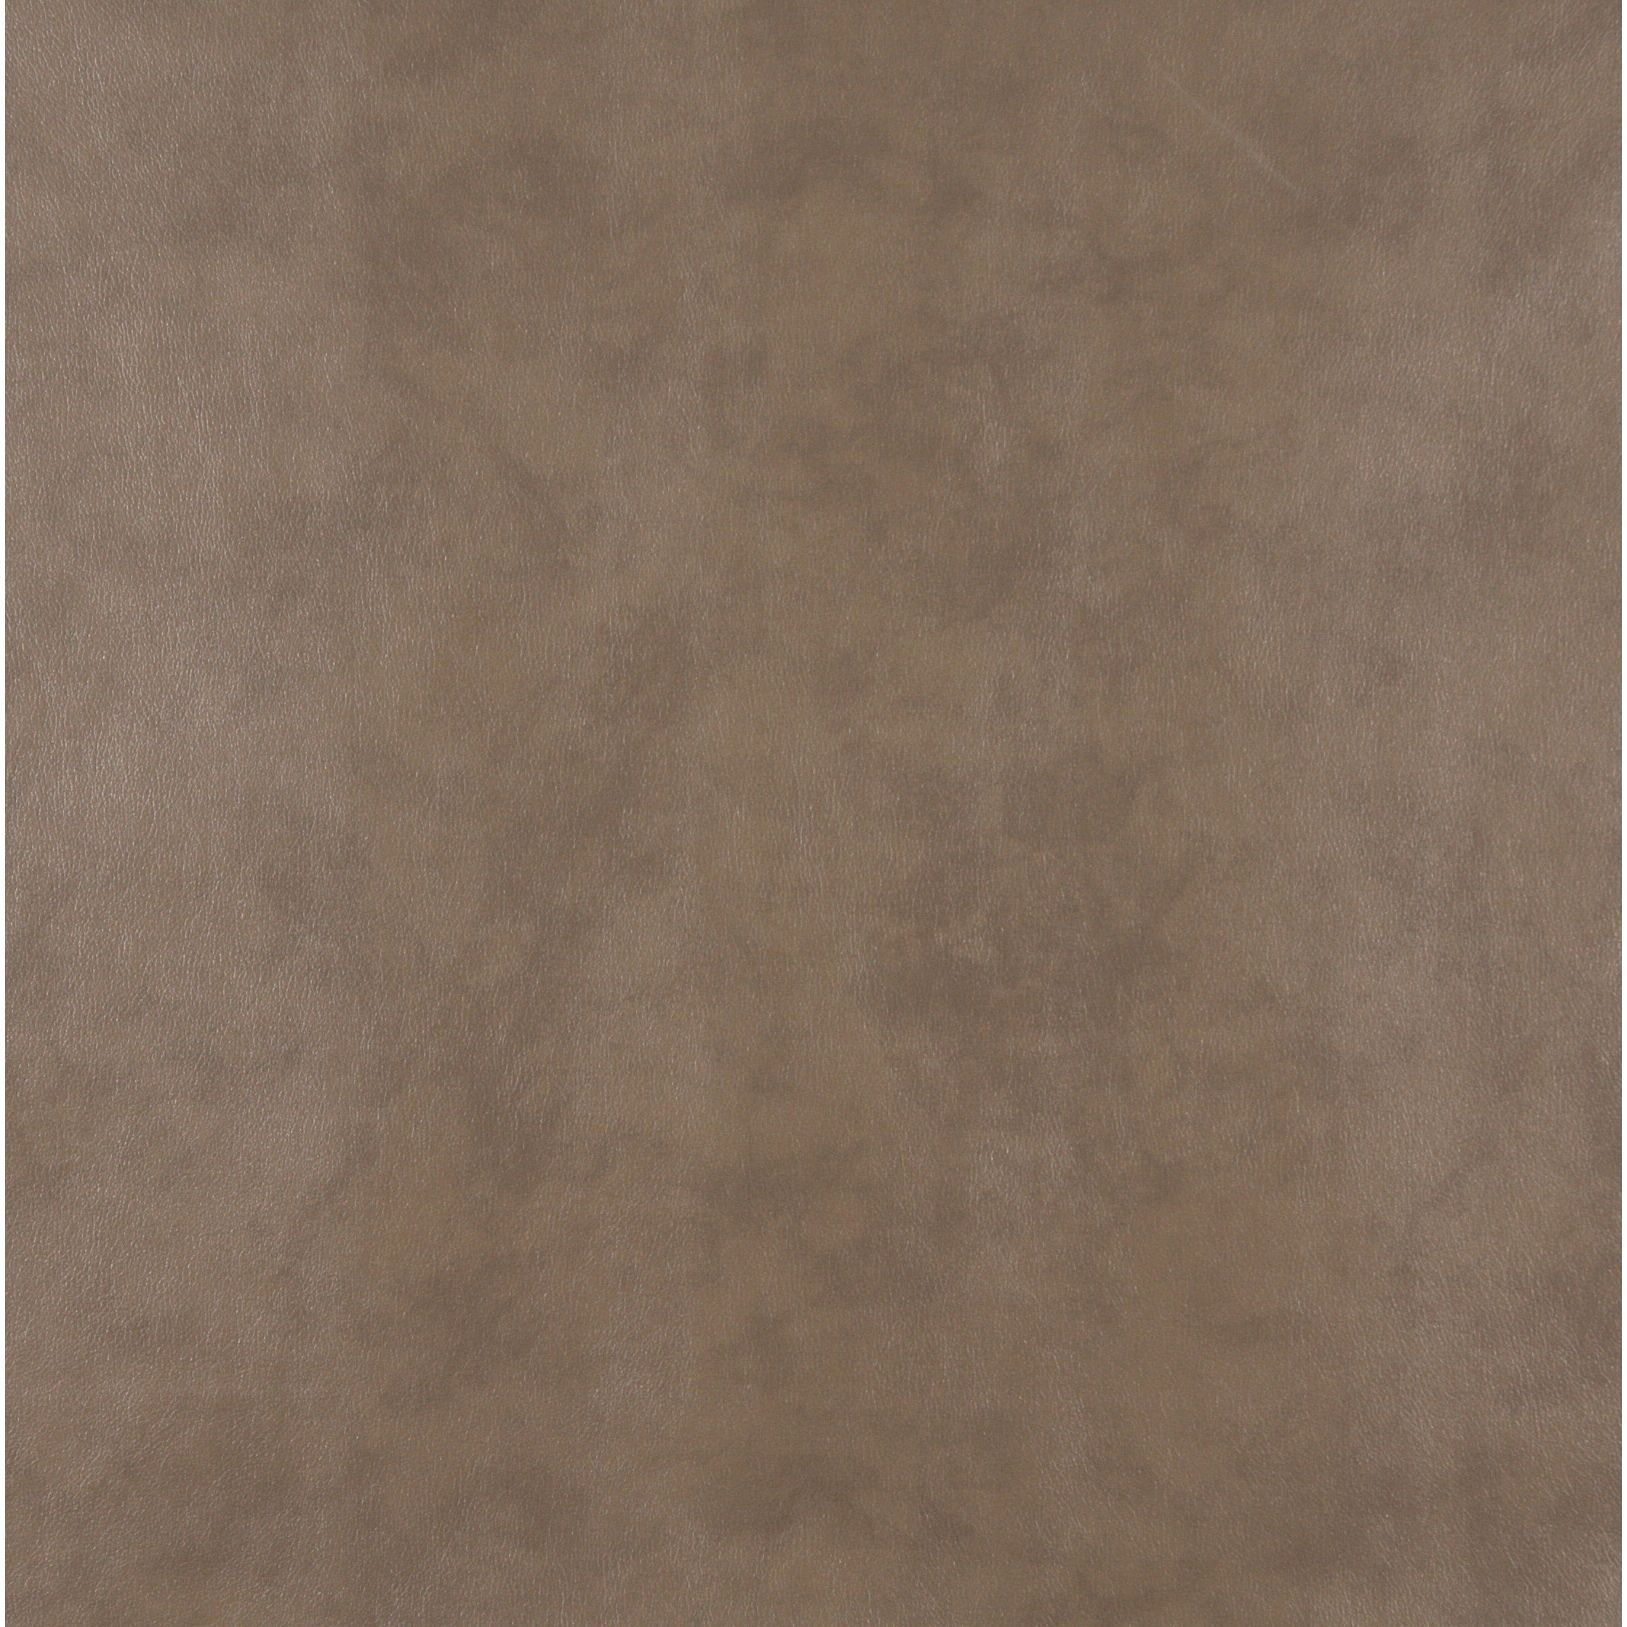 G522 Taupe Upholstery Grade Recycled Bonded Leather Texture